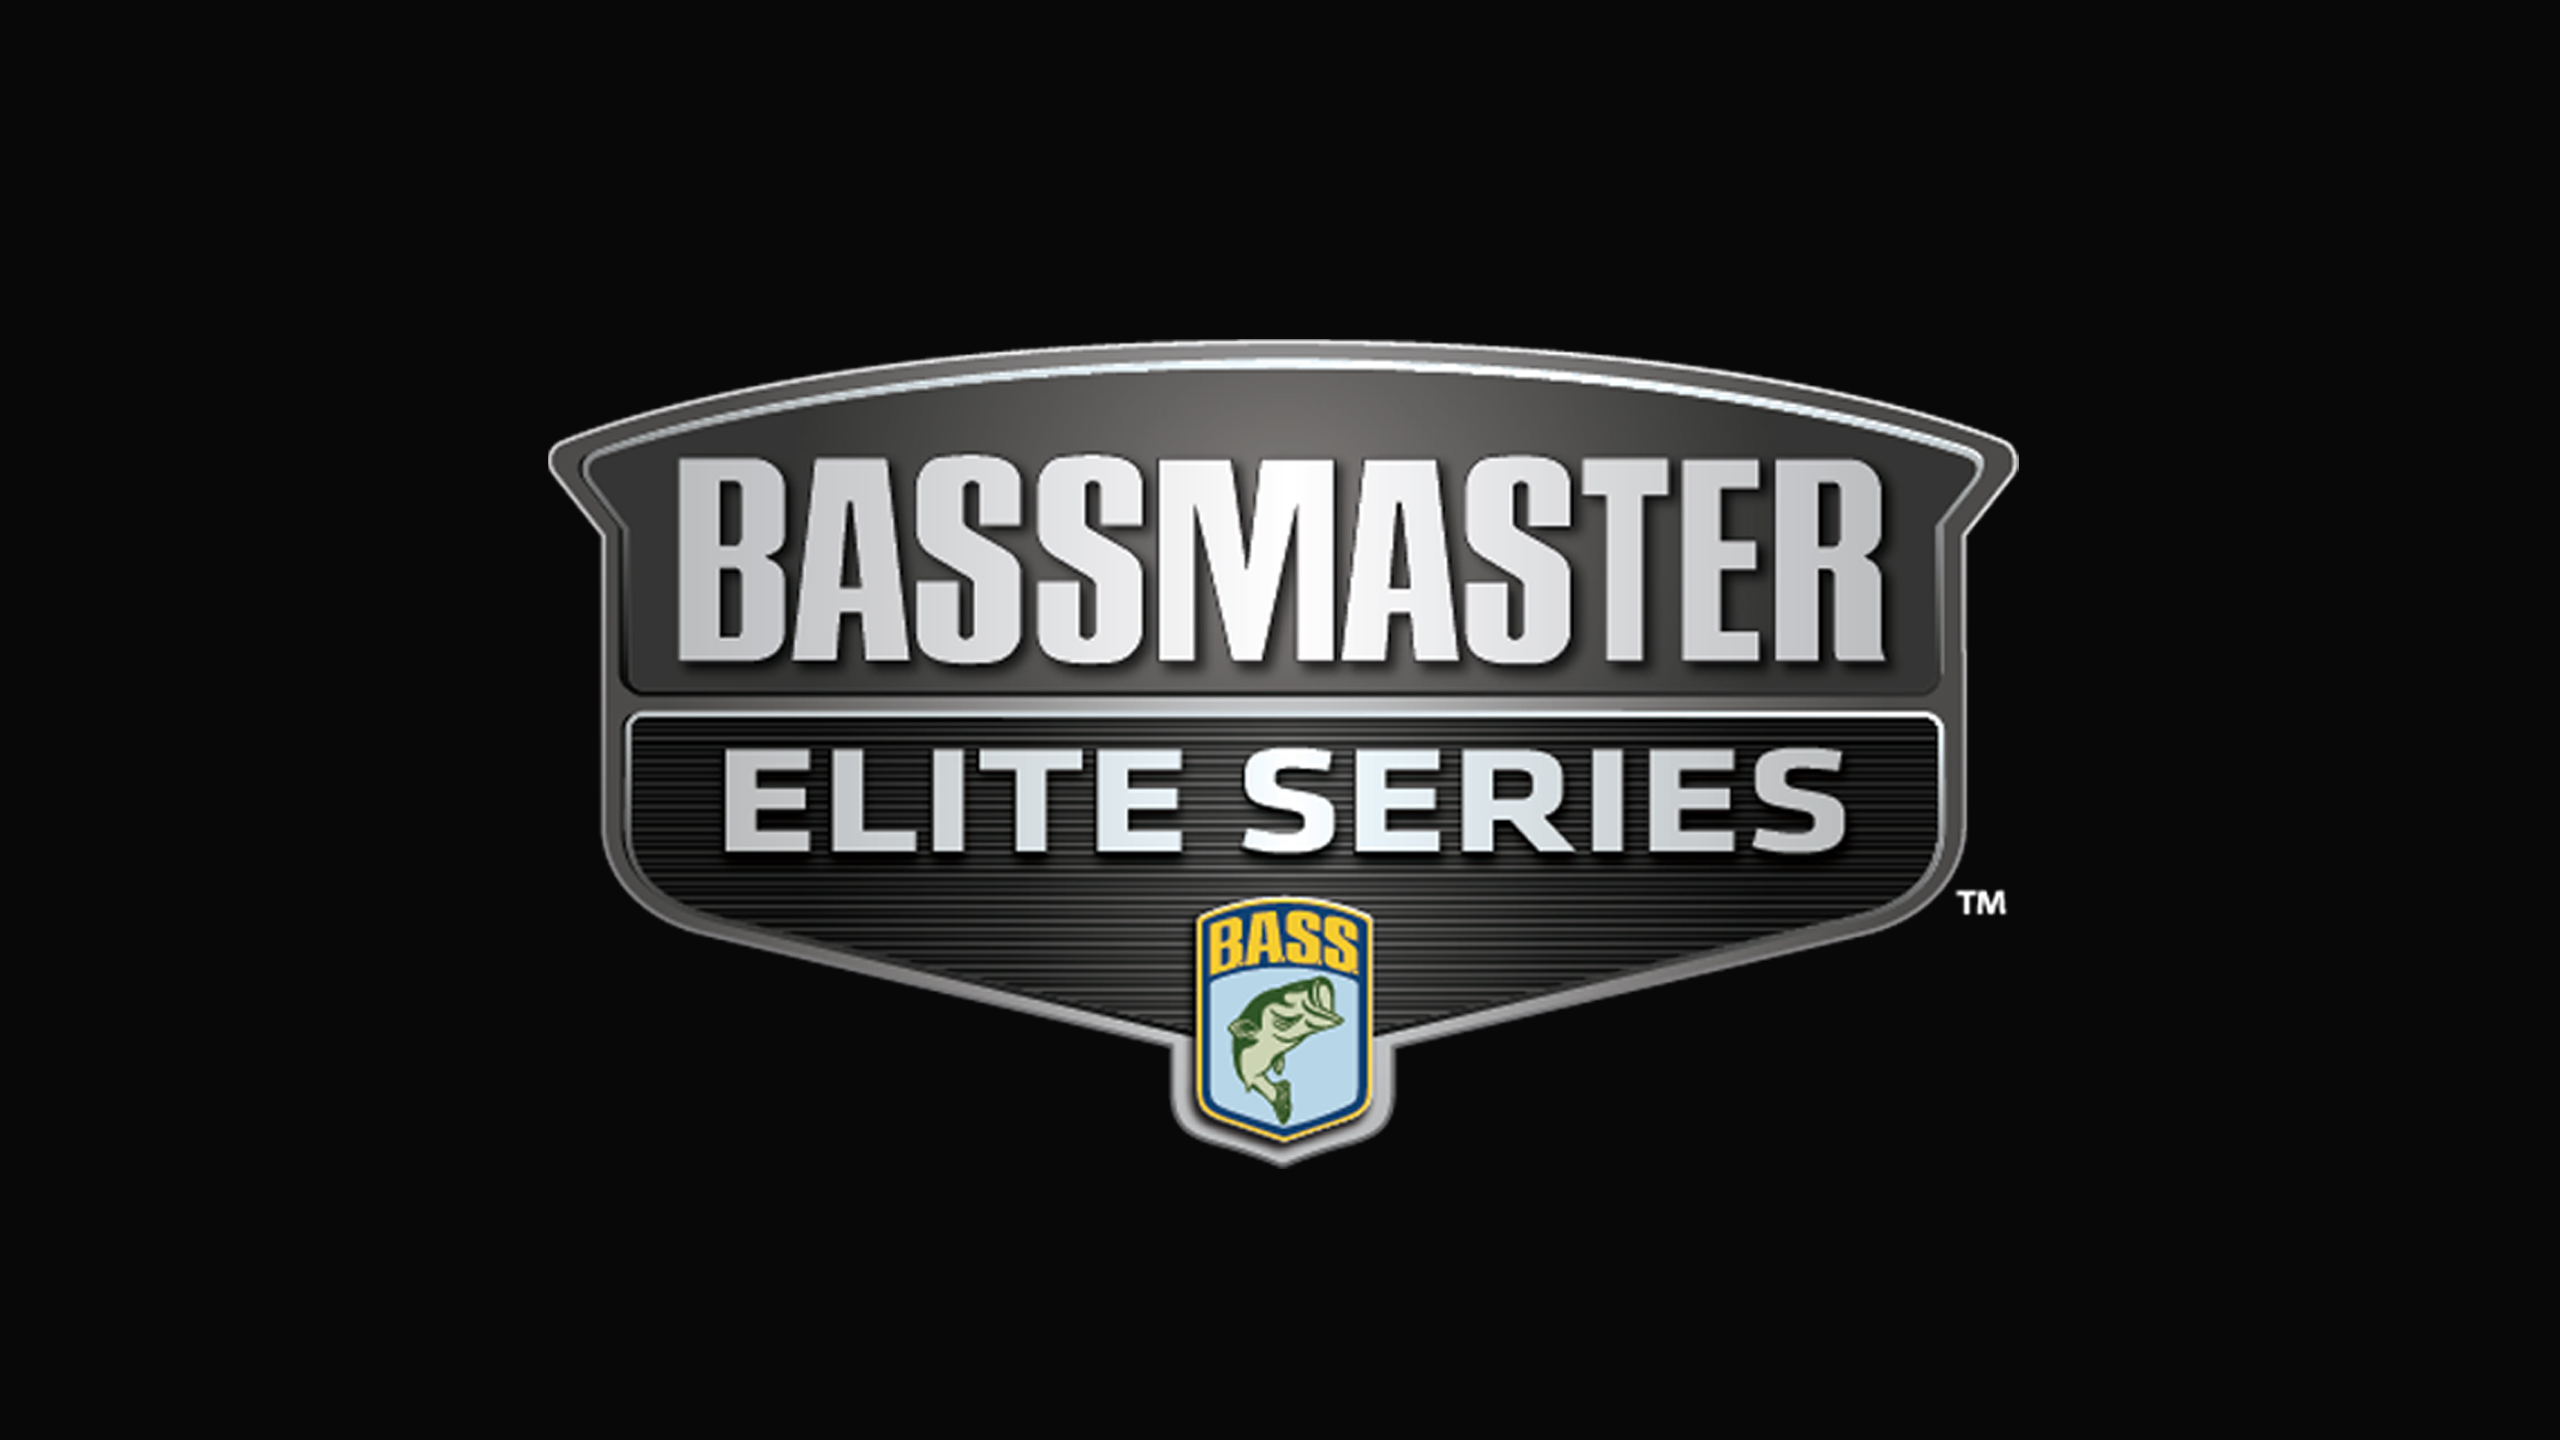 Bassmaster Elite Series at St. Lawrence River